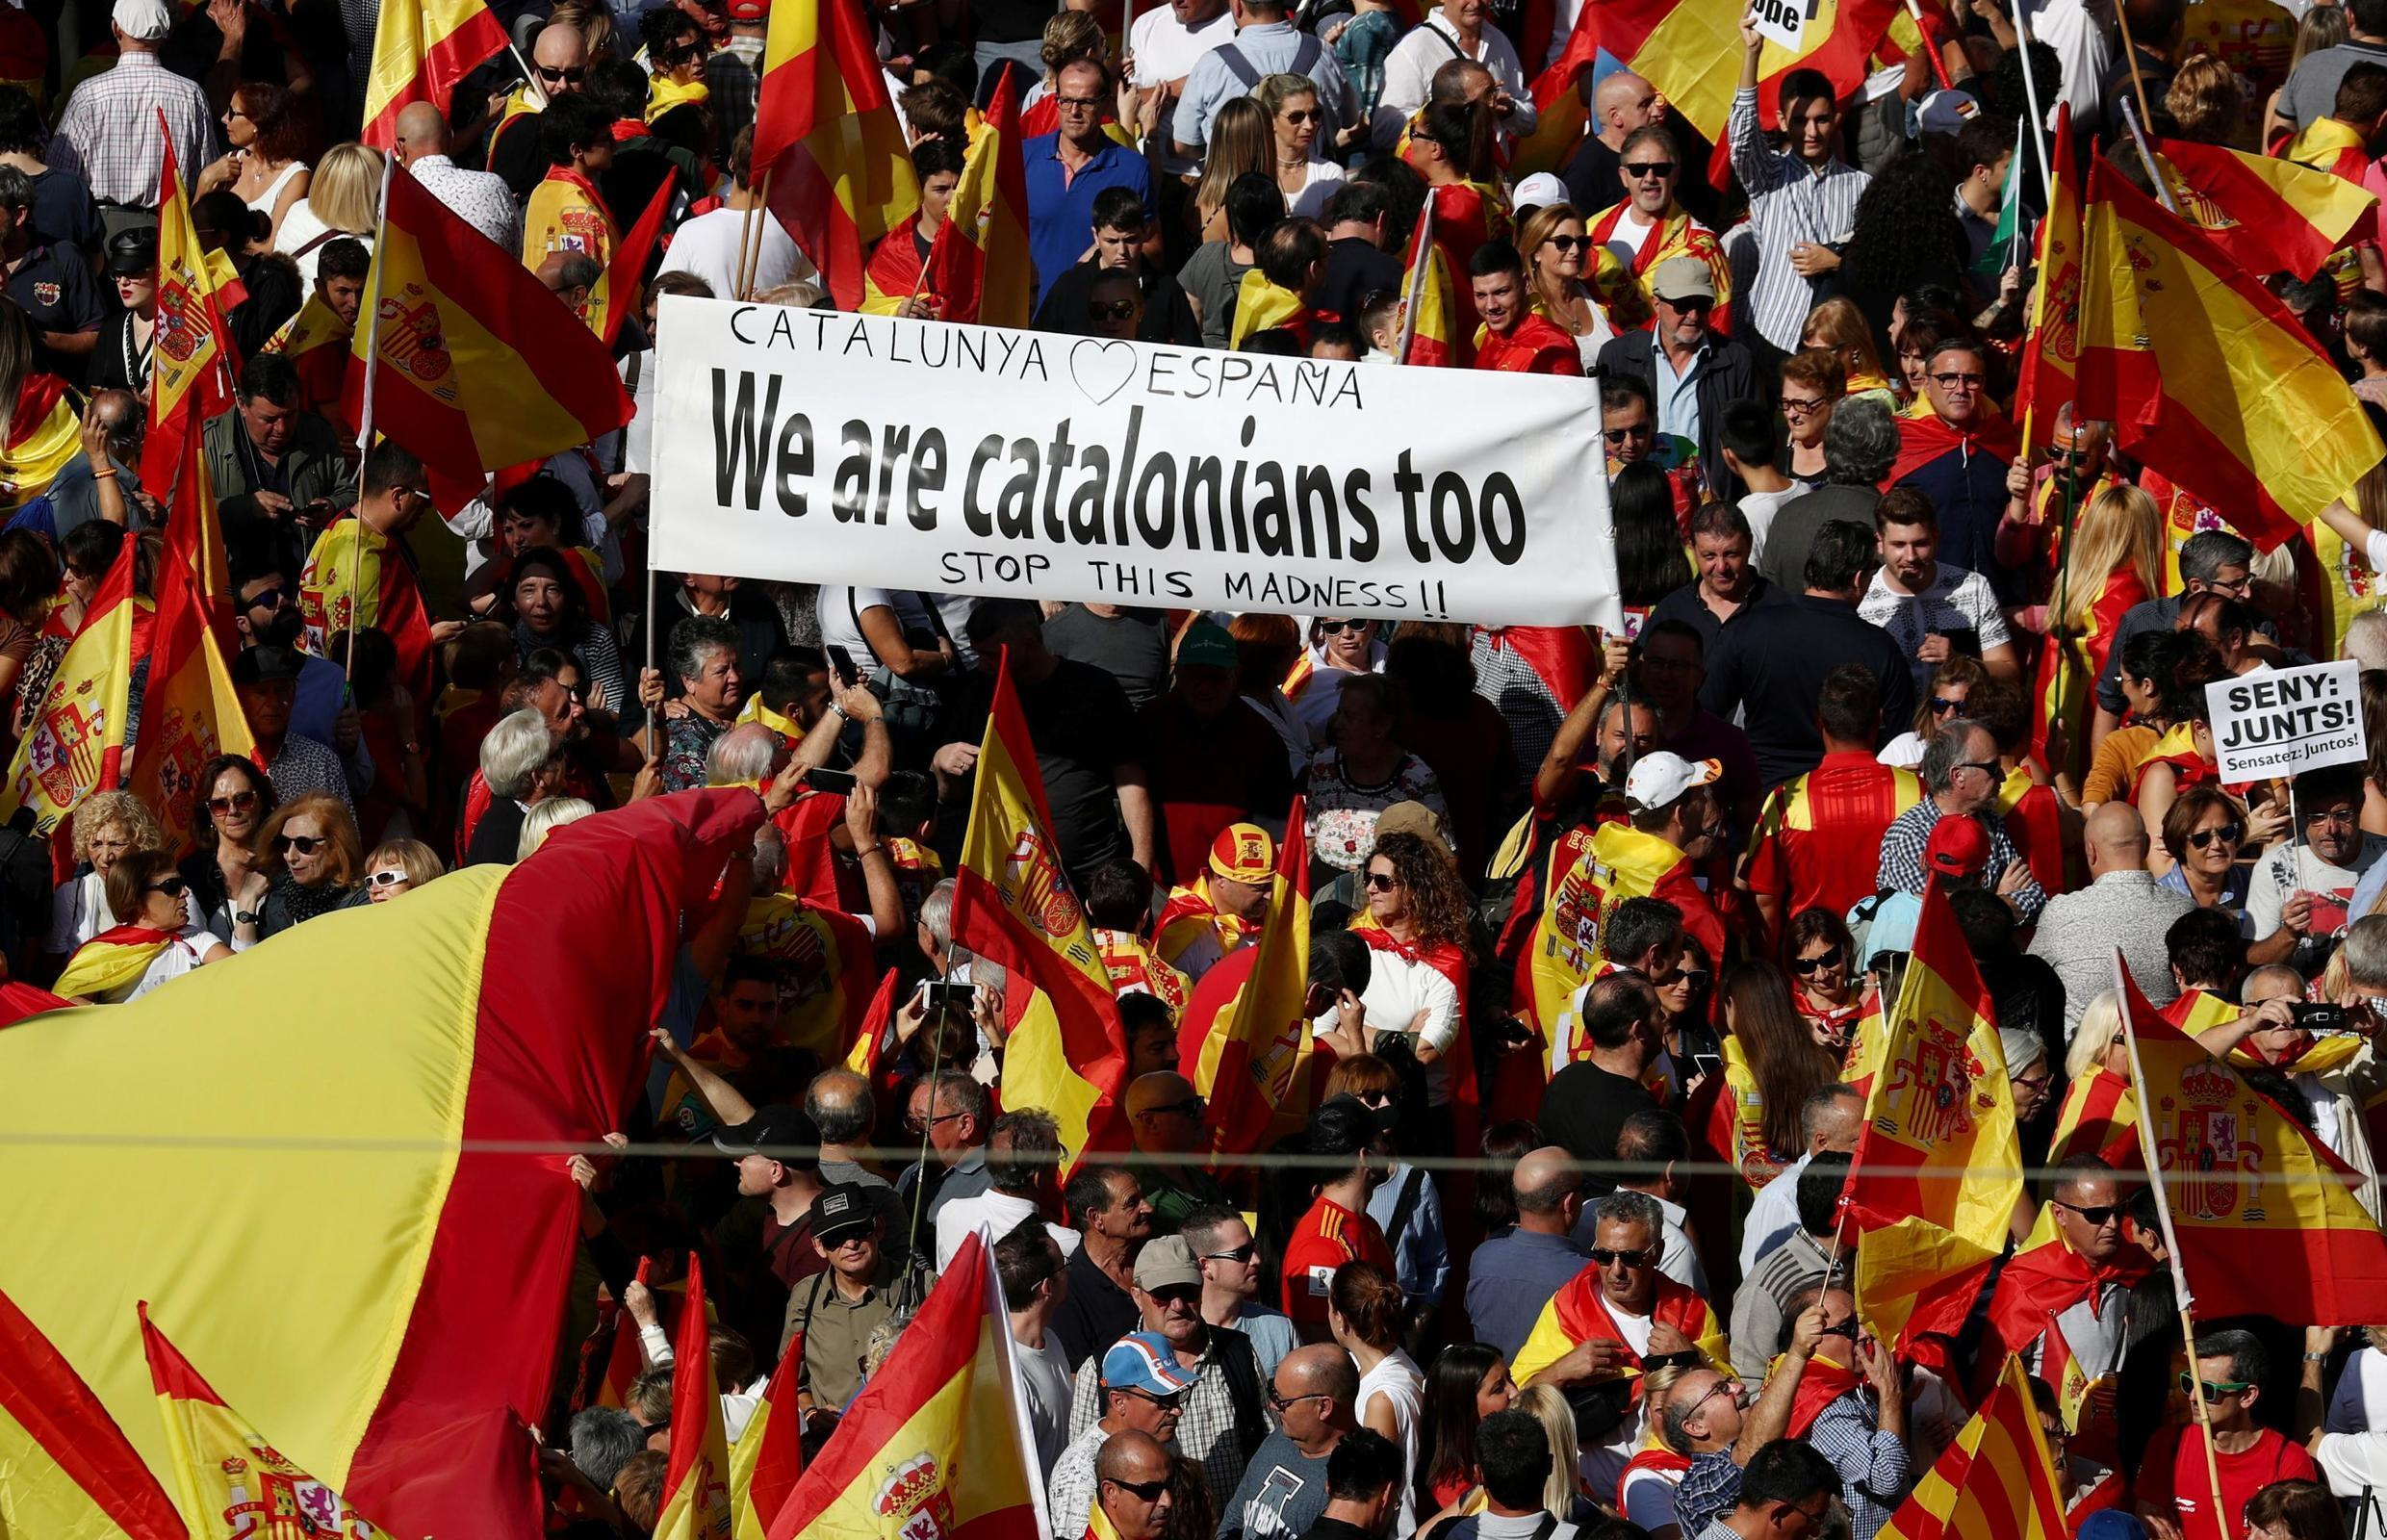 Supporters of Spanish unity demonstrate their wish for co-existence in Catalonia and an end to separatism, in Barcelona, Spain, 27 October 2019.